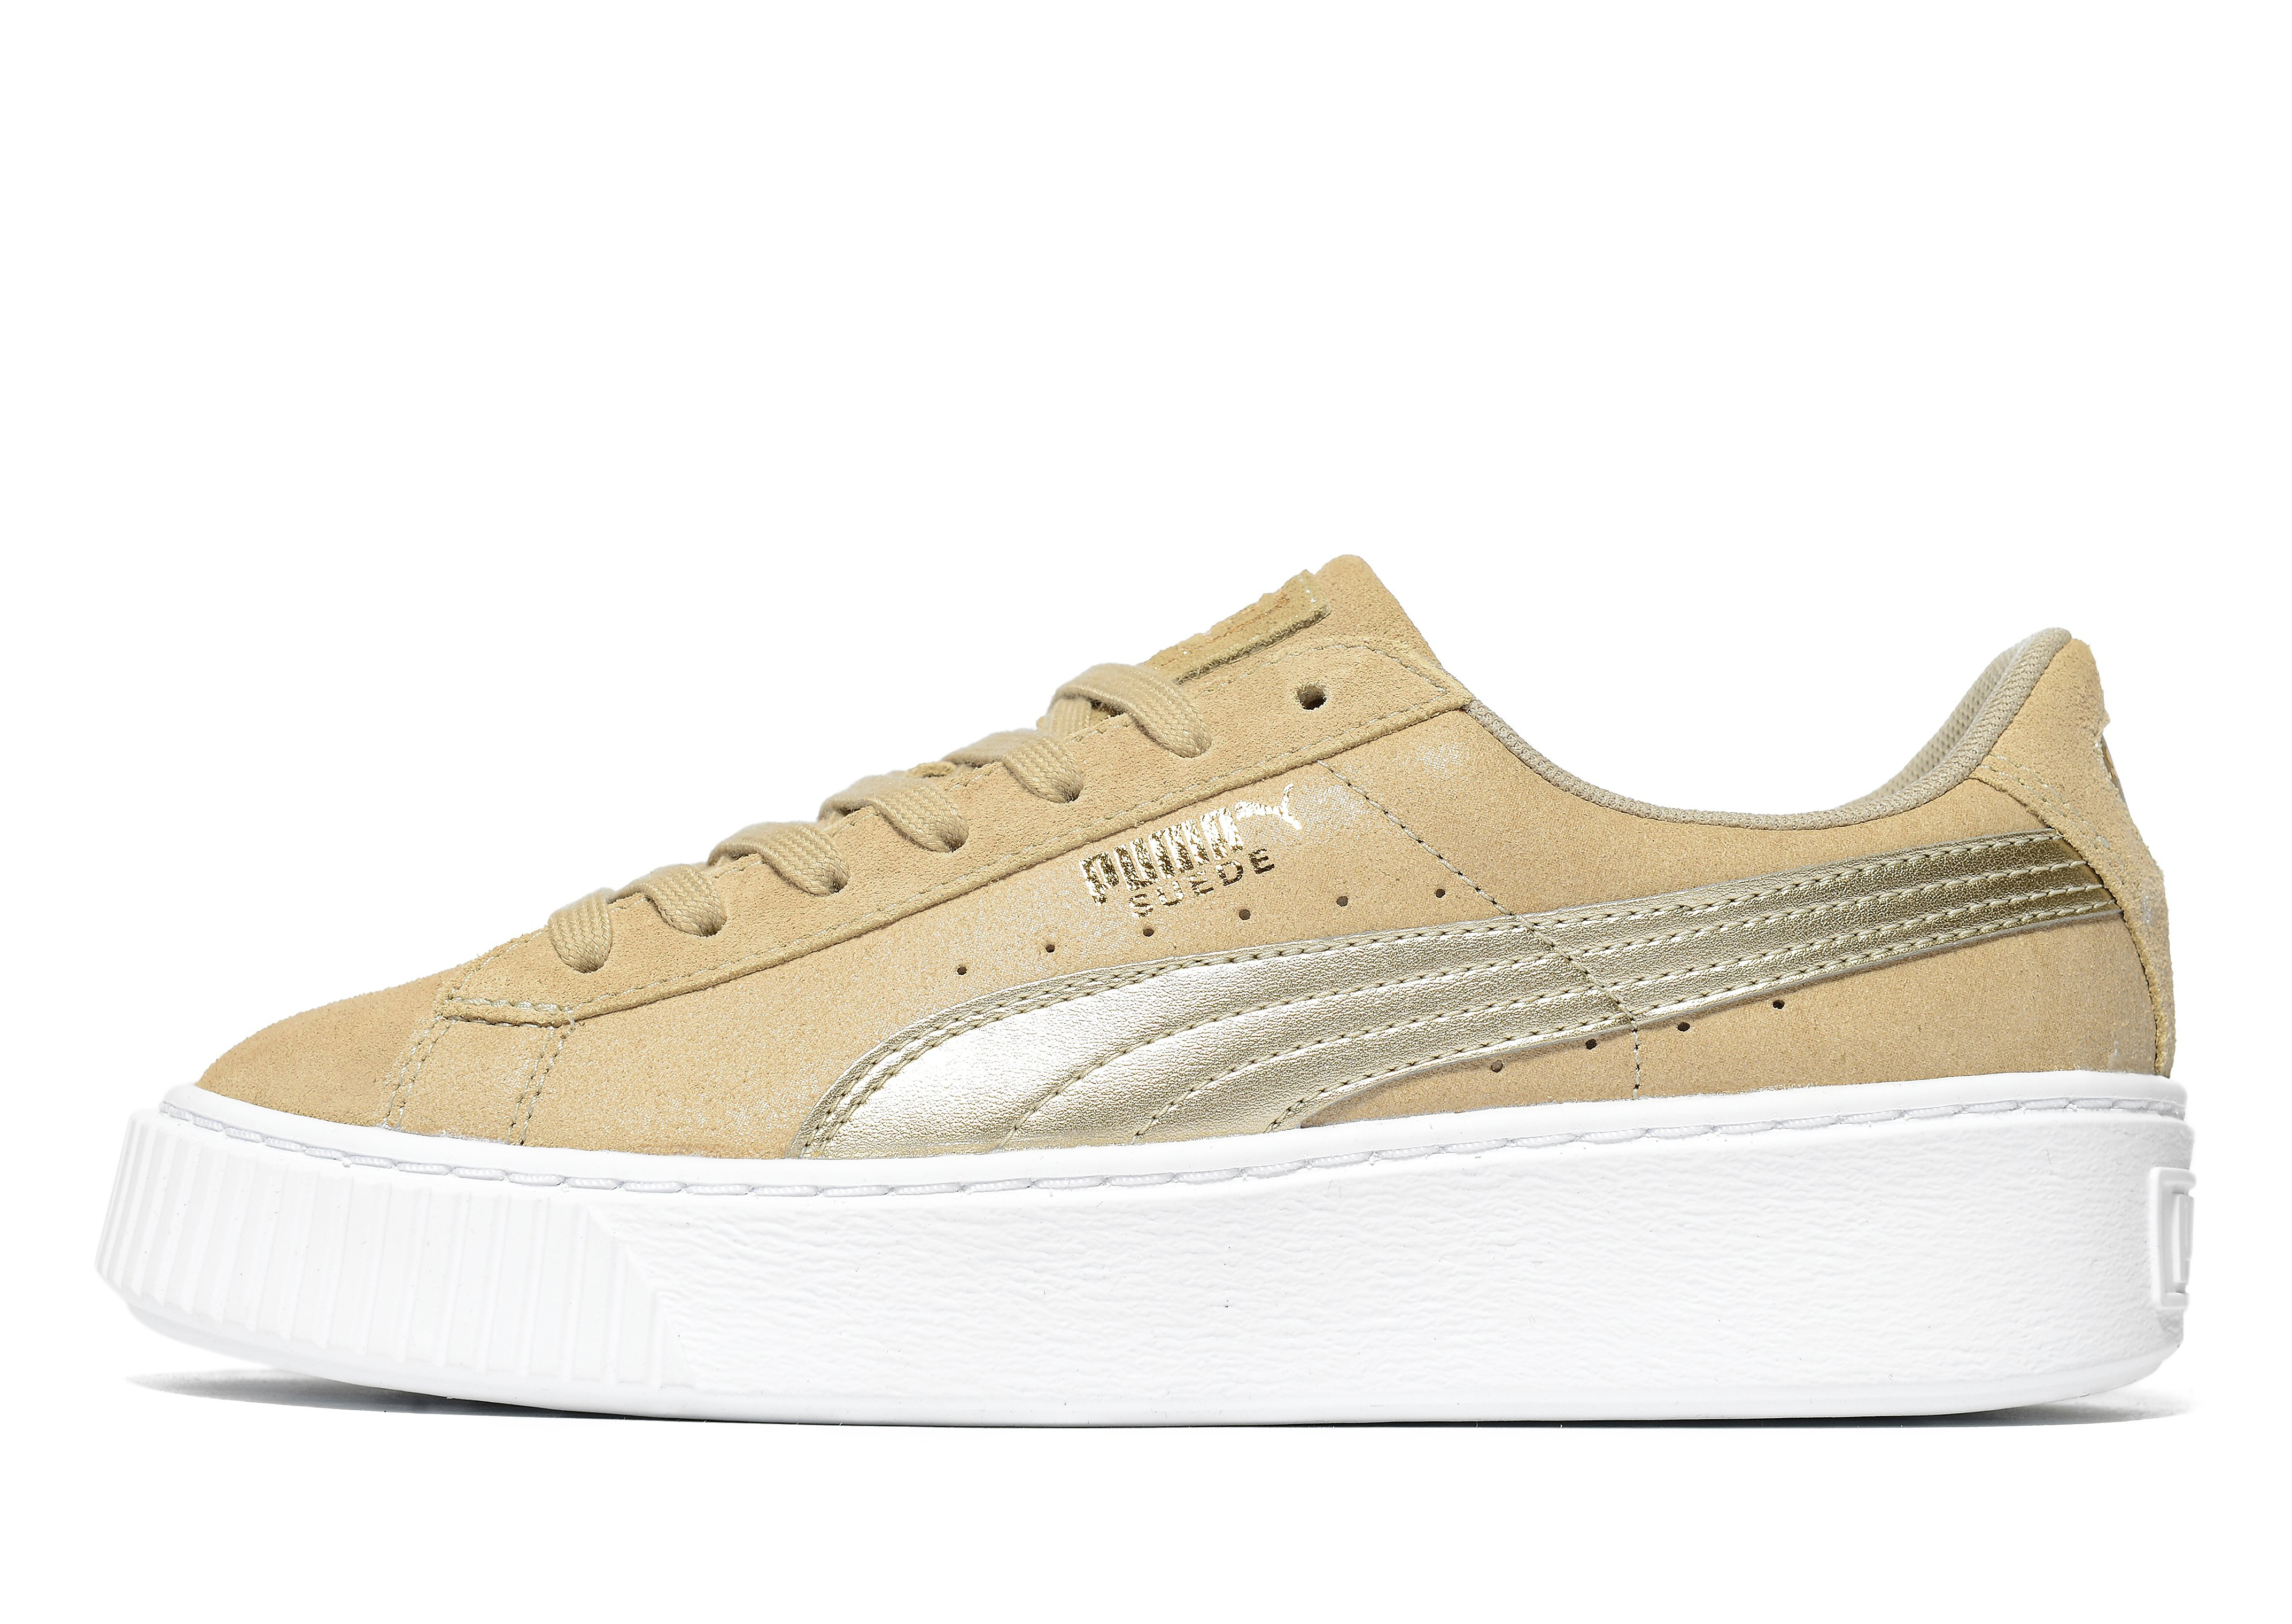 PUMA Basket Platform Safari Women's